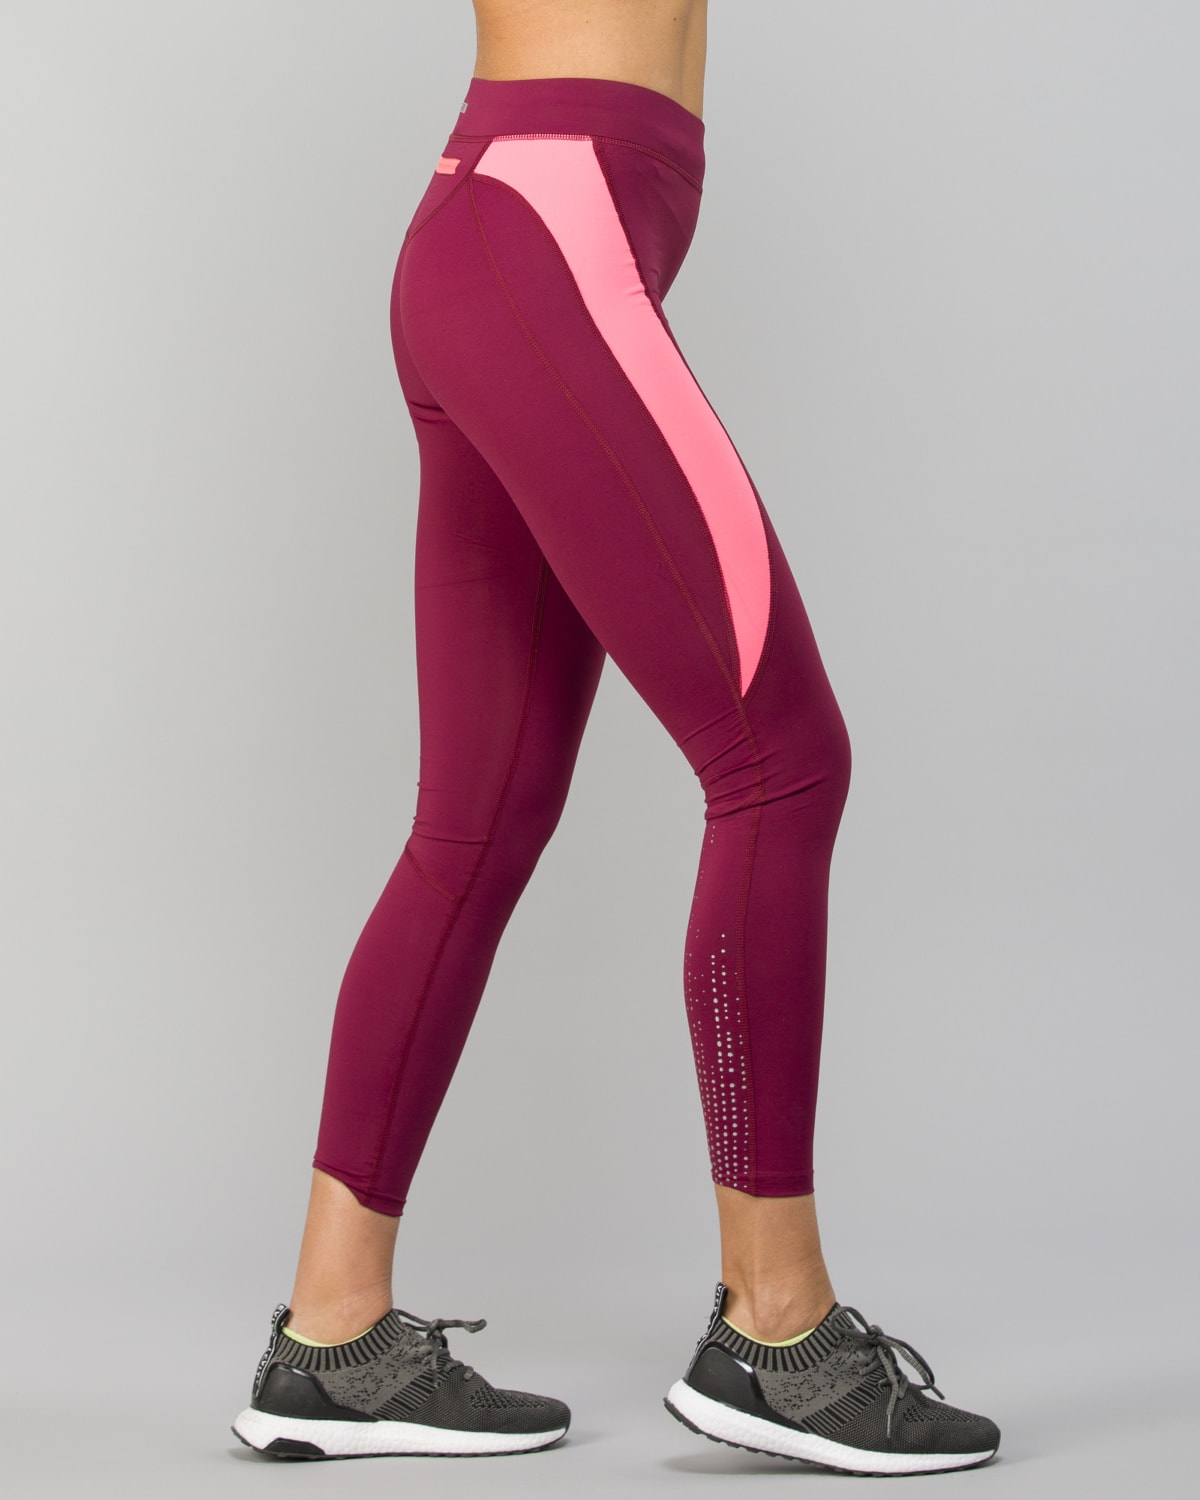 Only-Play-Vibe-Run-Compression-Tights3